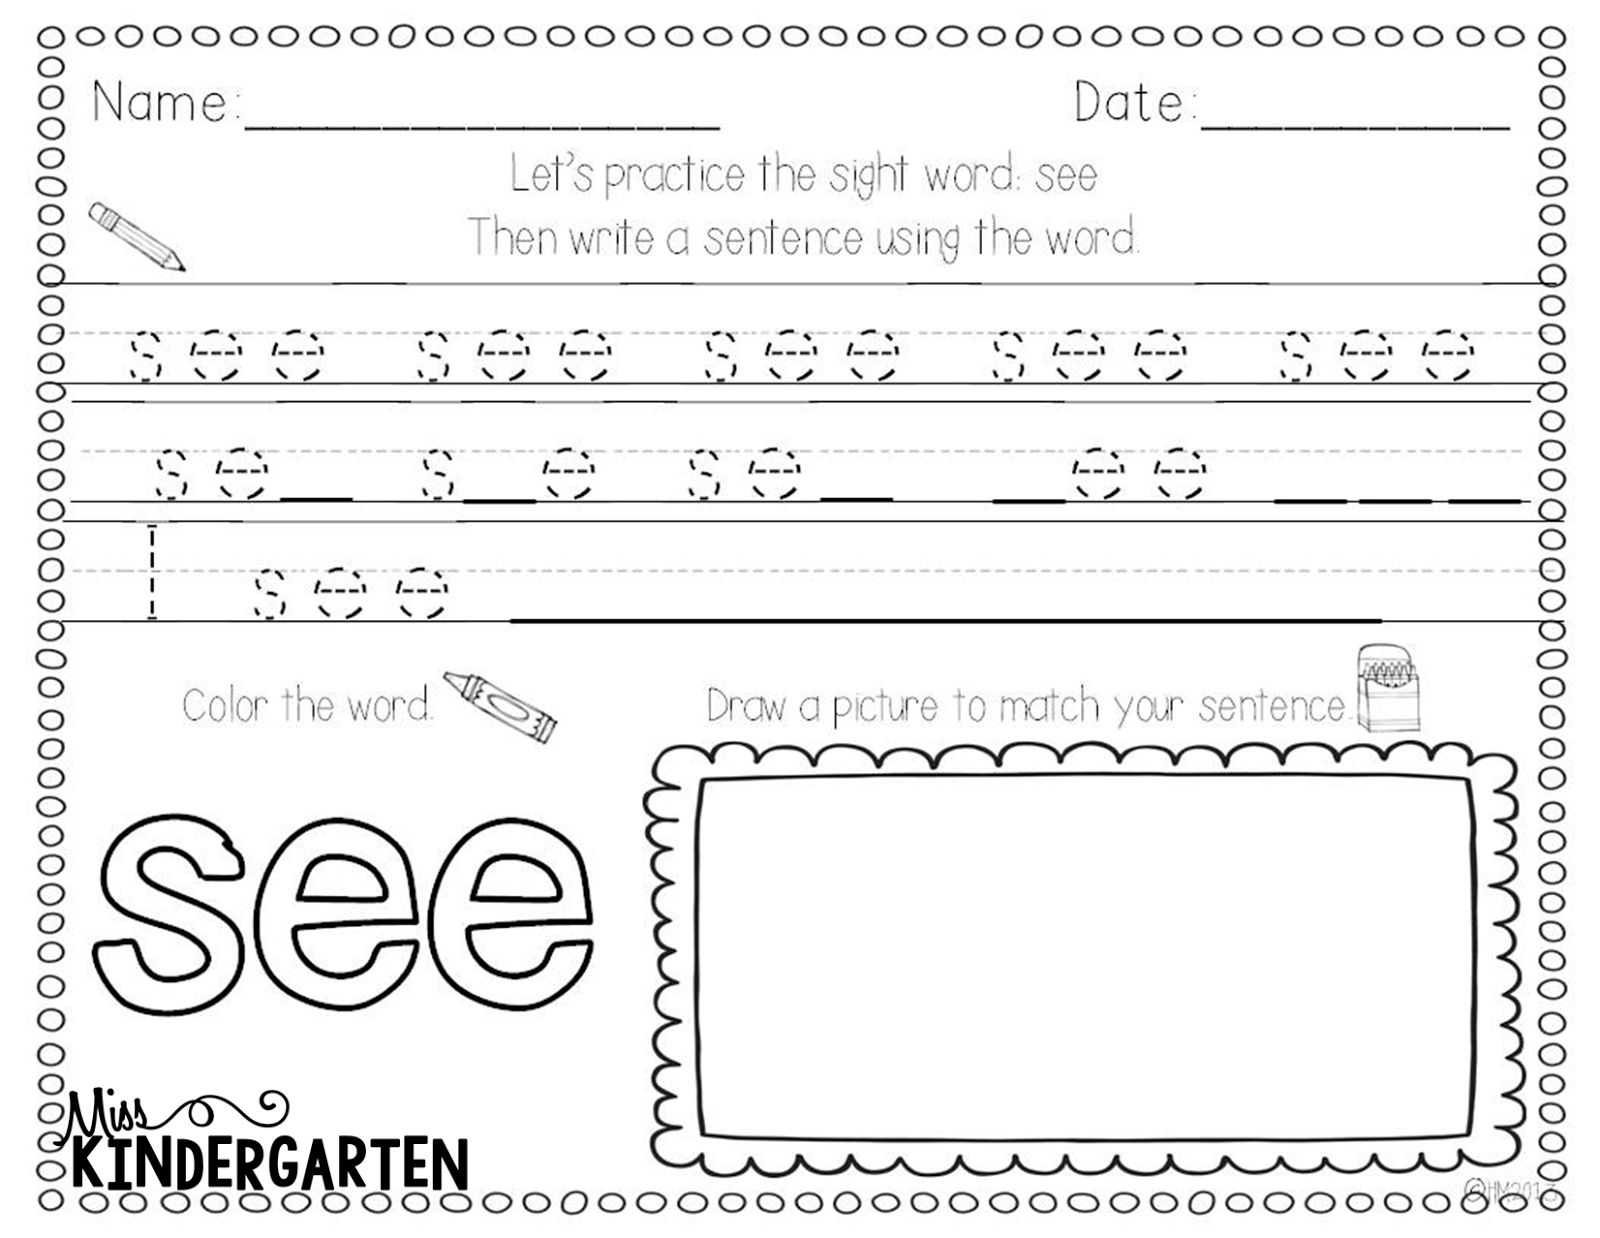 Worksheet Sight Word Writing Activities sight word practice miss kindergarten httpwww teacherspayteachers comproductsight word